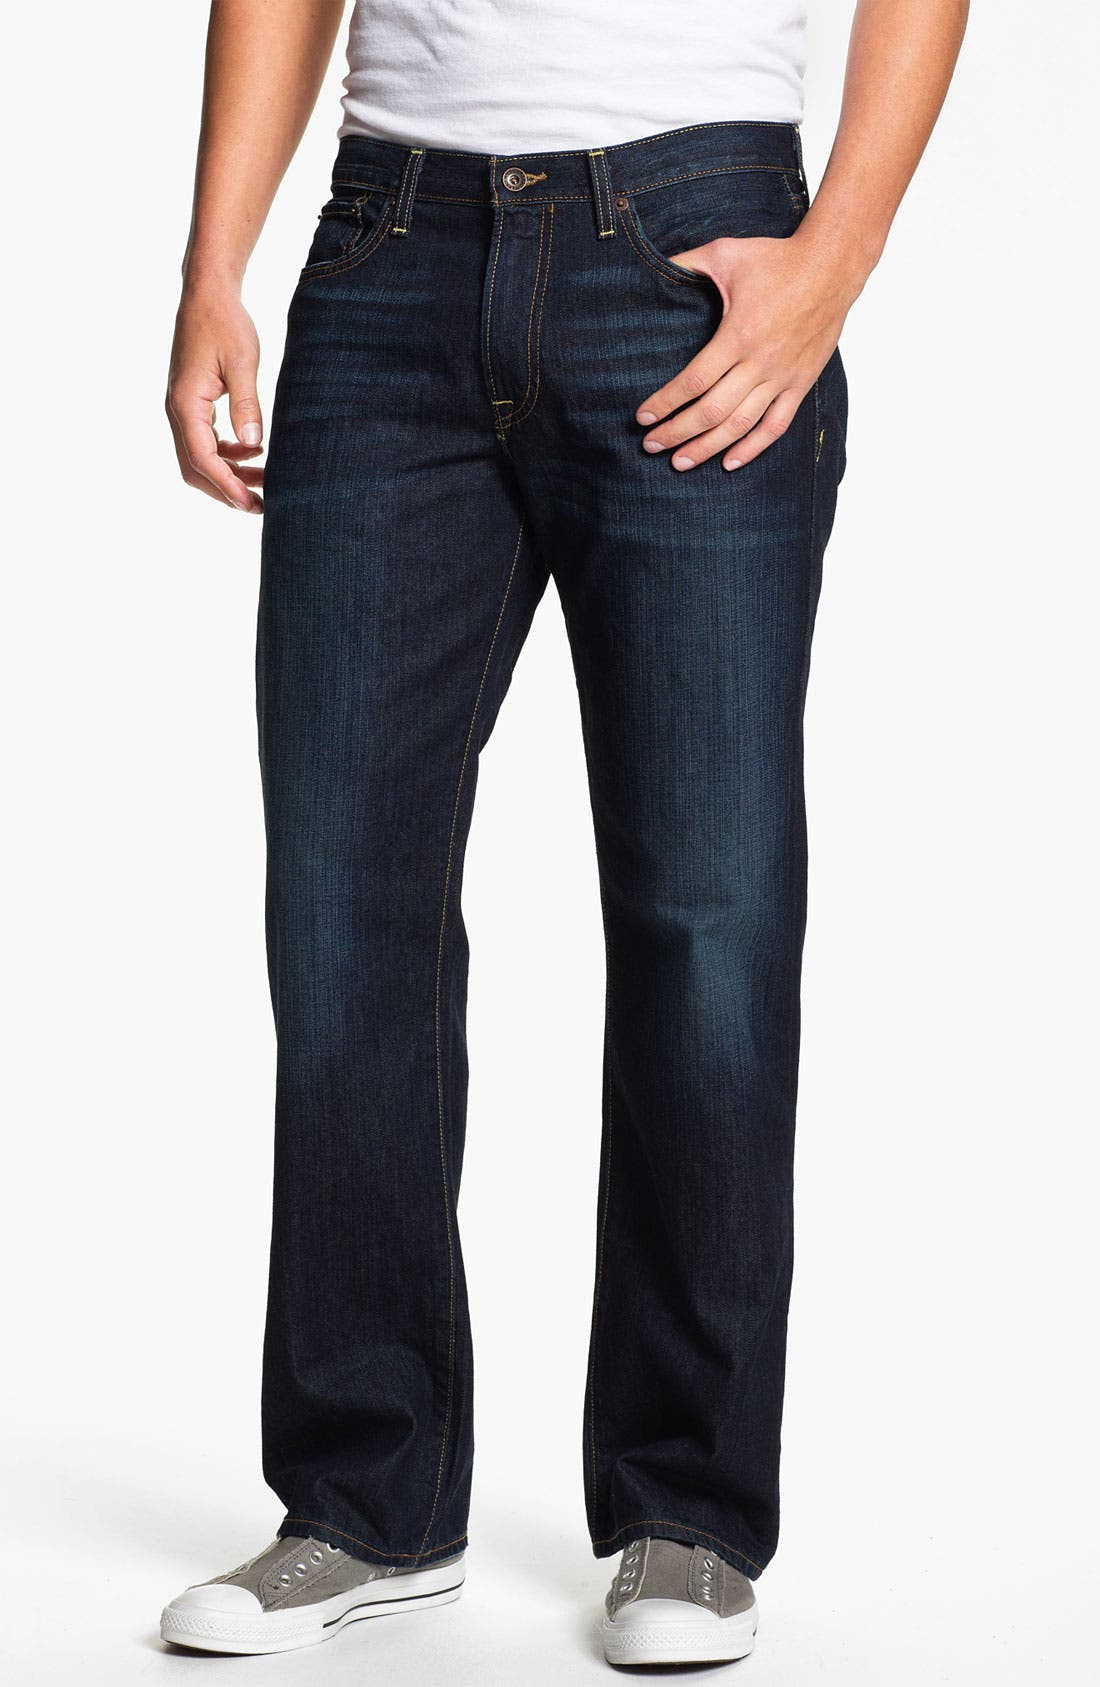 Alternate Image 1 Selected - Lucky Brand '361 Vintage' Straight Leg Jeans (Ol' Oklahoma)